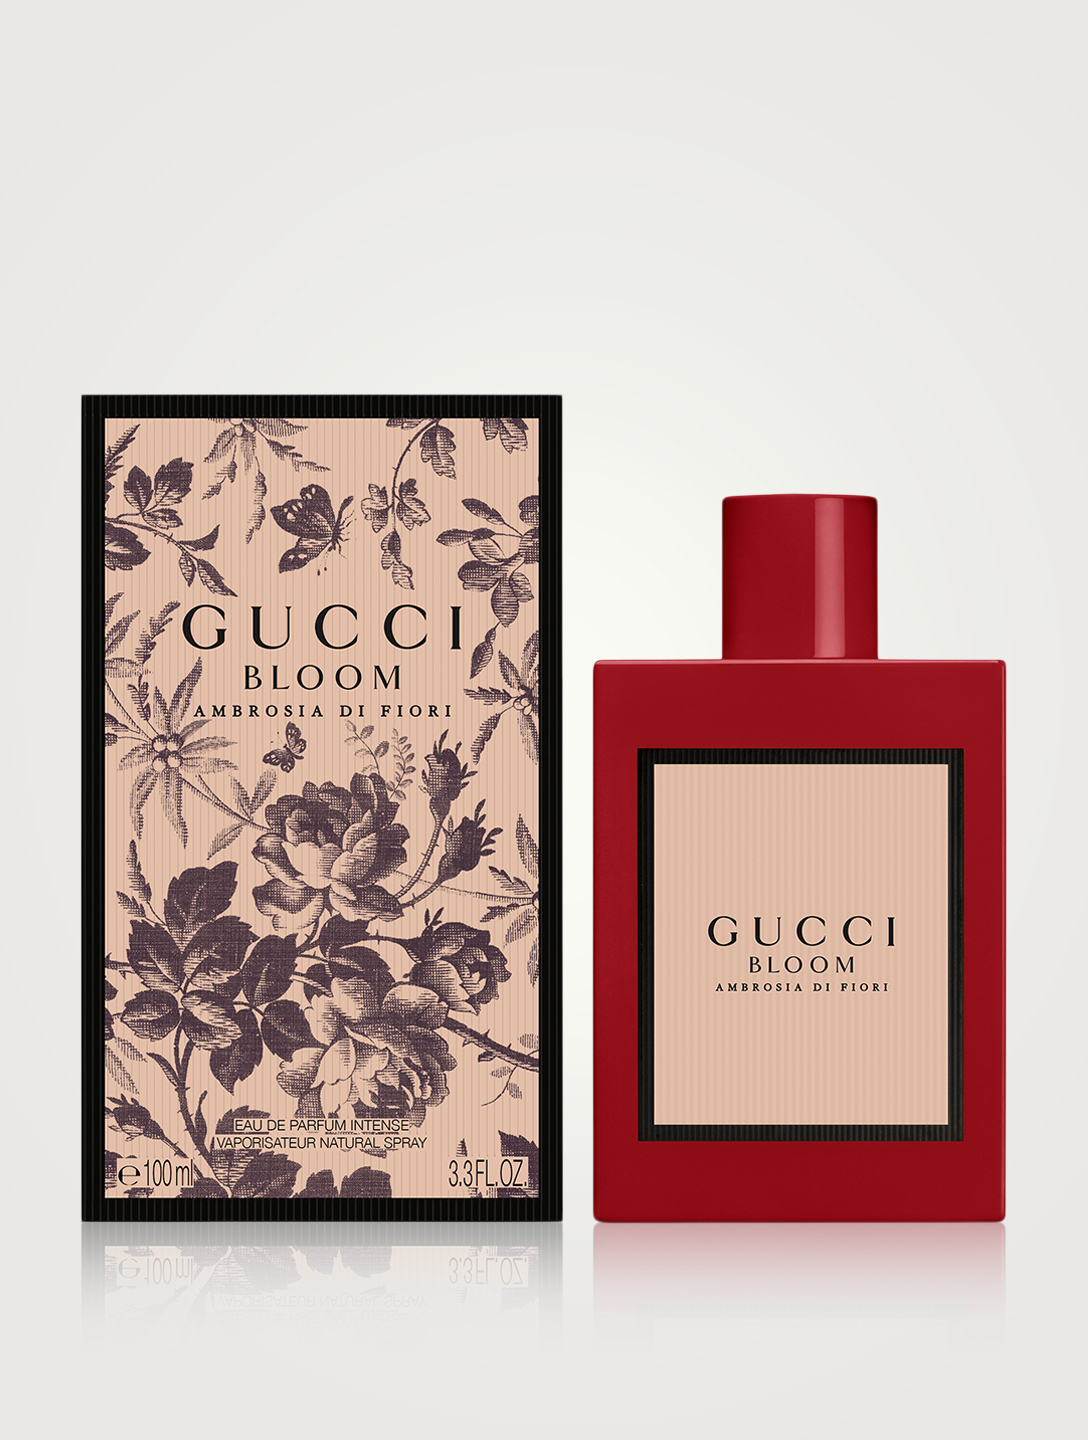 GUCCI Gucci Bloom Ambrosia di Fiori Eau de Parfum Intense For Her Beauty